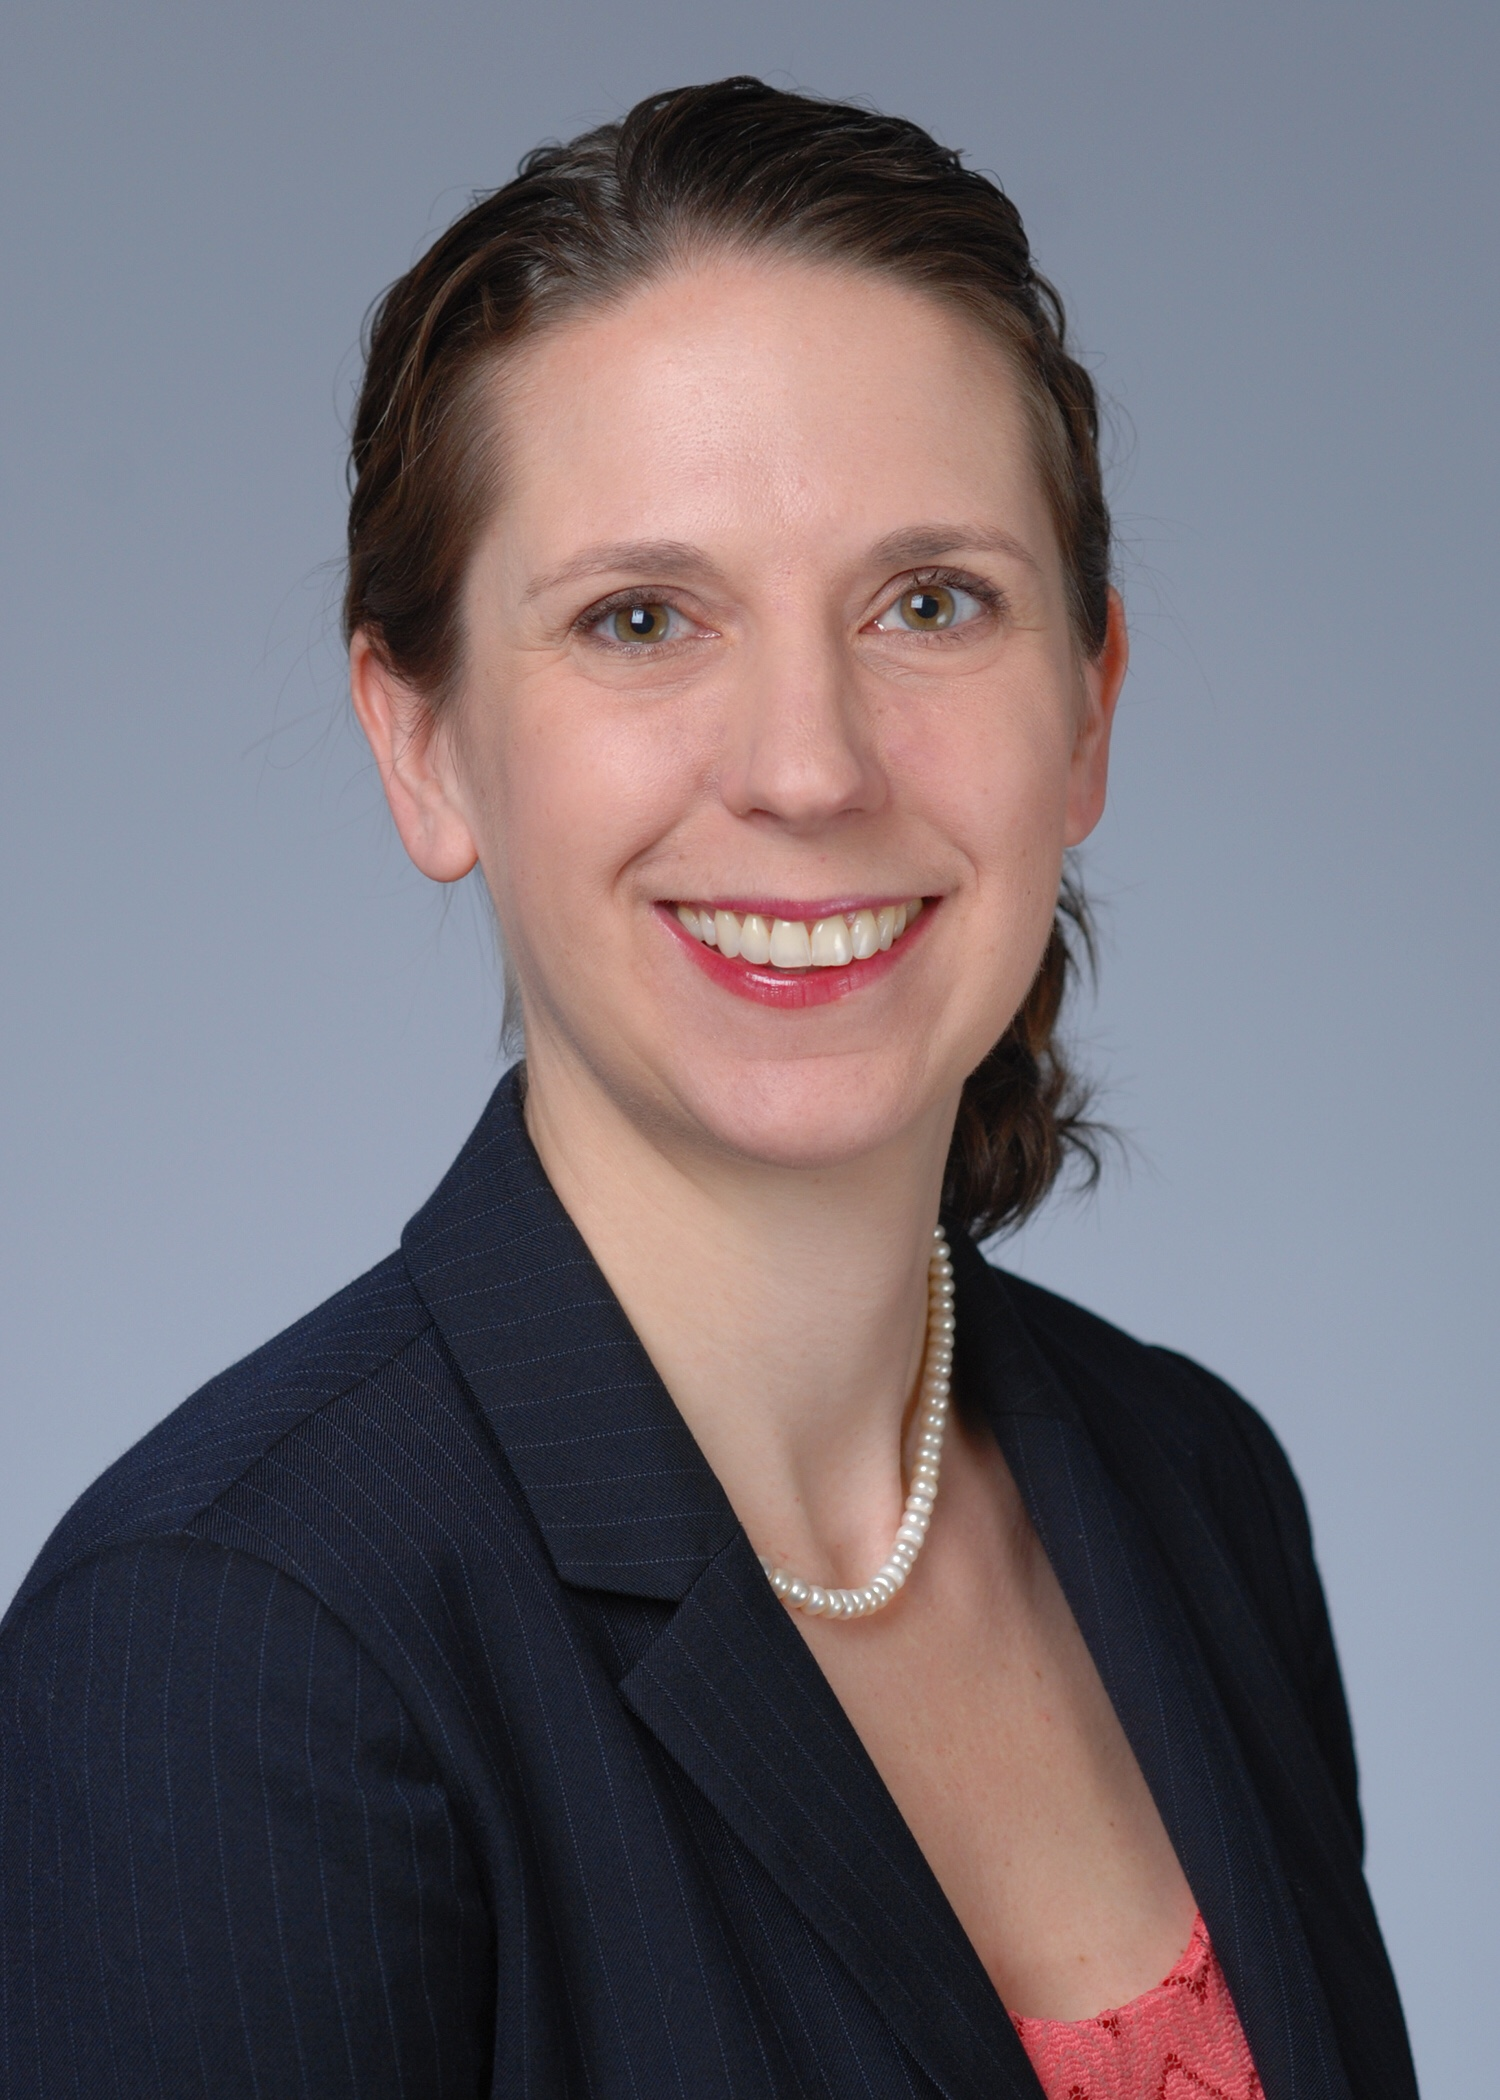 Pediatric Urologist Dr. Jessica Casey